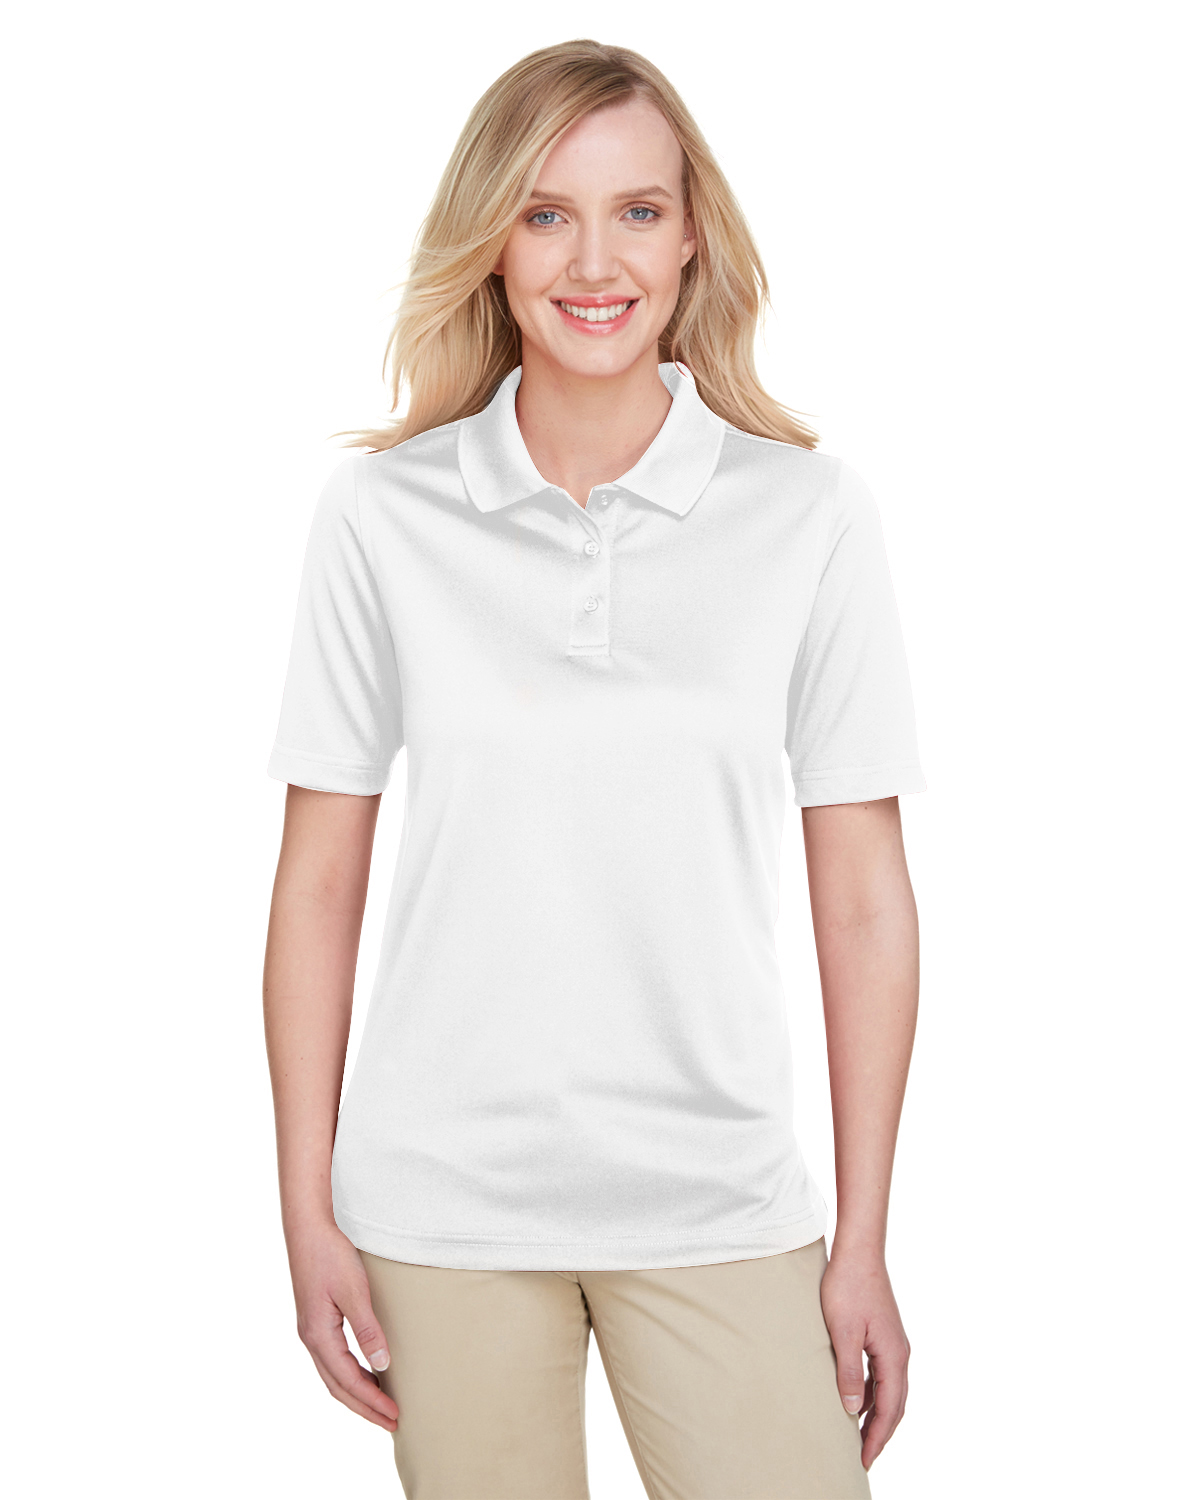 Ladies' Advantage Snag Protection Plus Polo